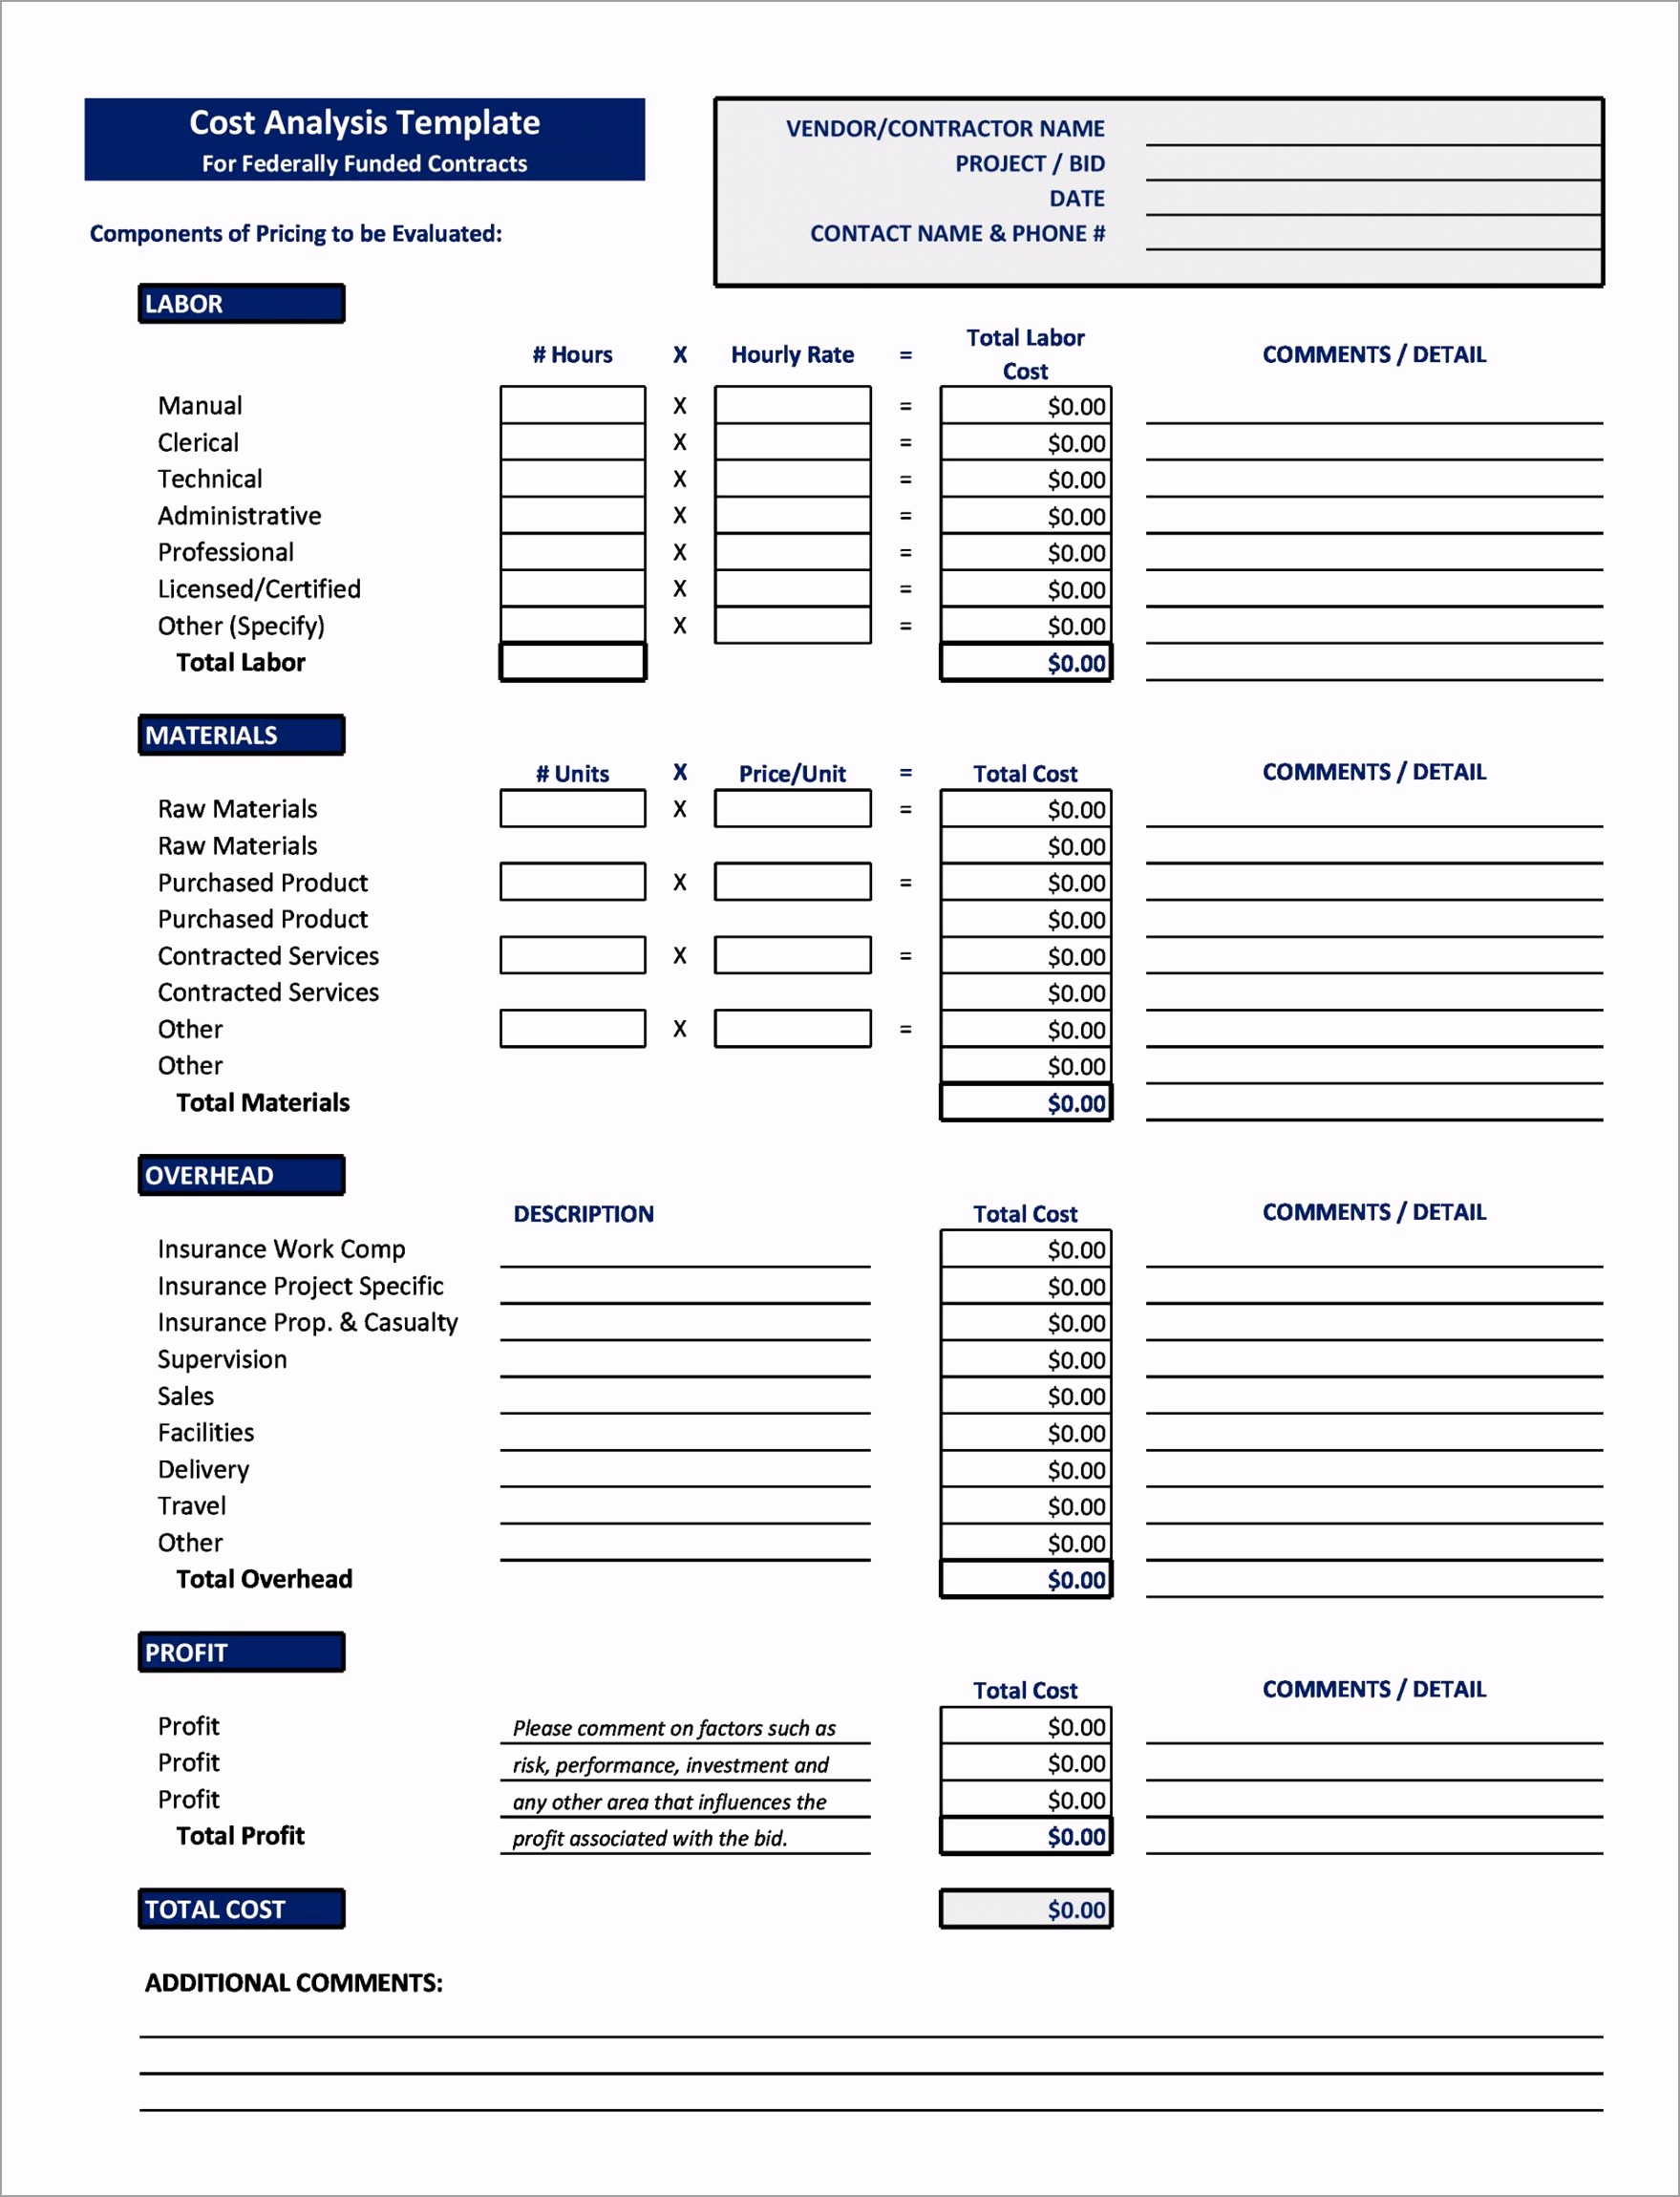 Cost Benefit Analysis Template 06 inawp